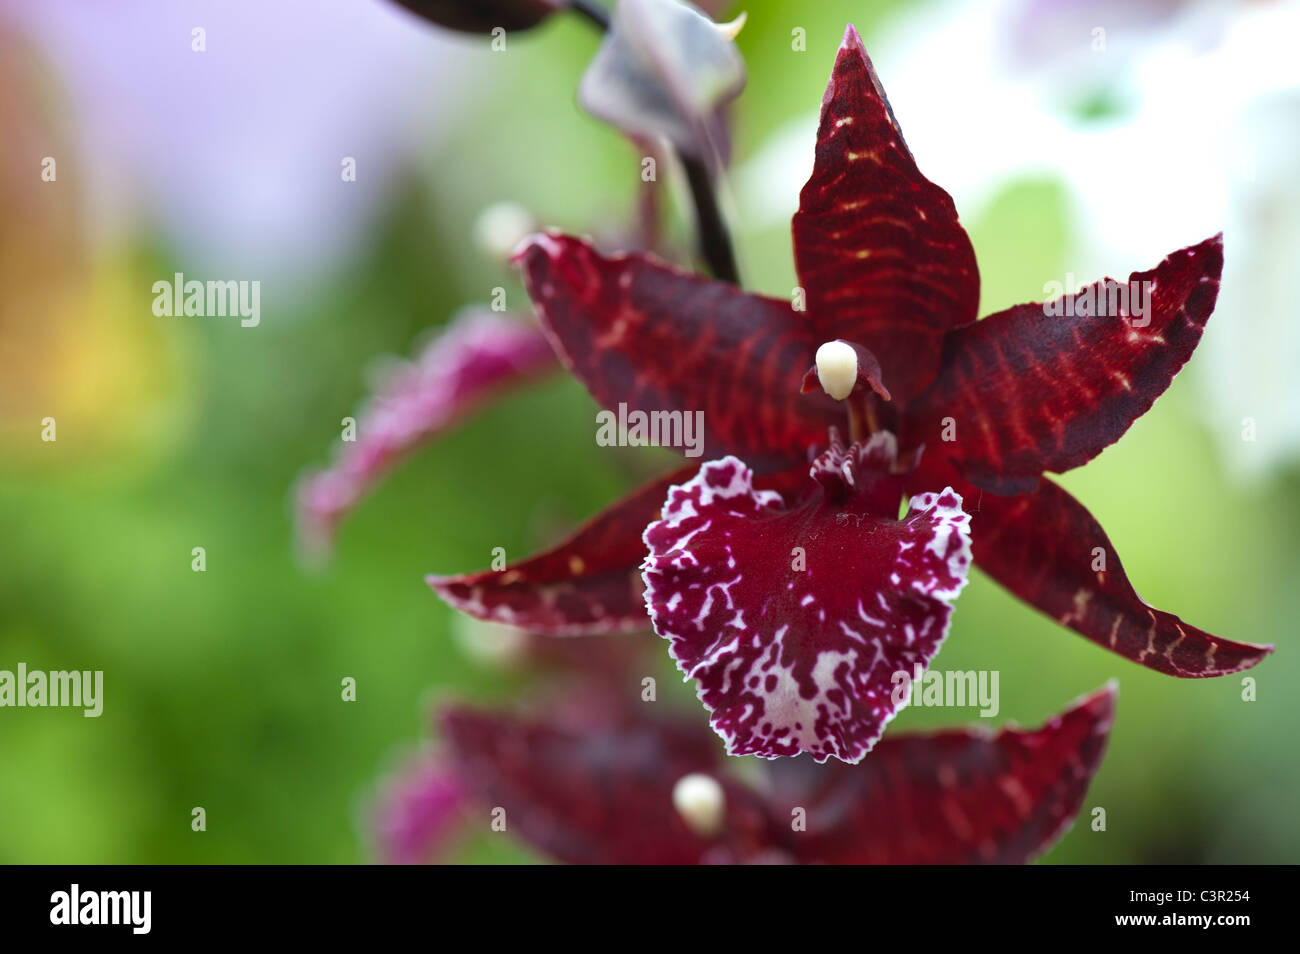 Colmanara Masai red orchid flower - Stock Image